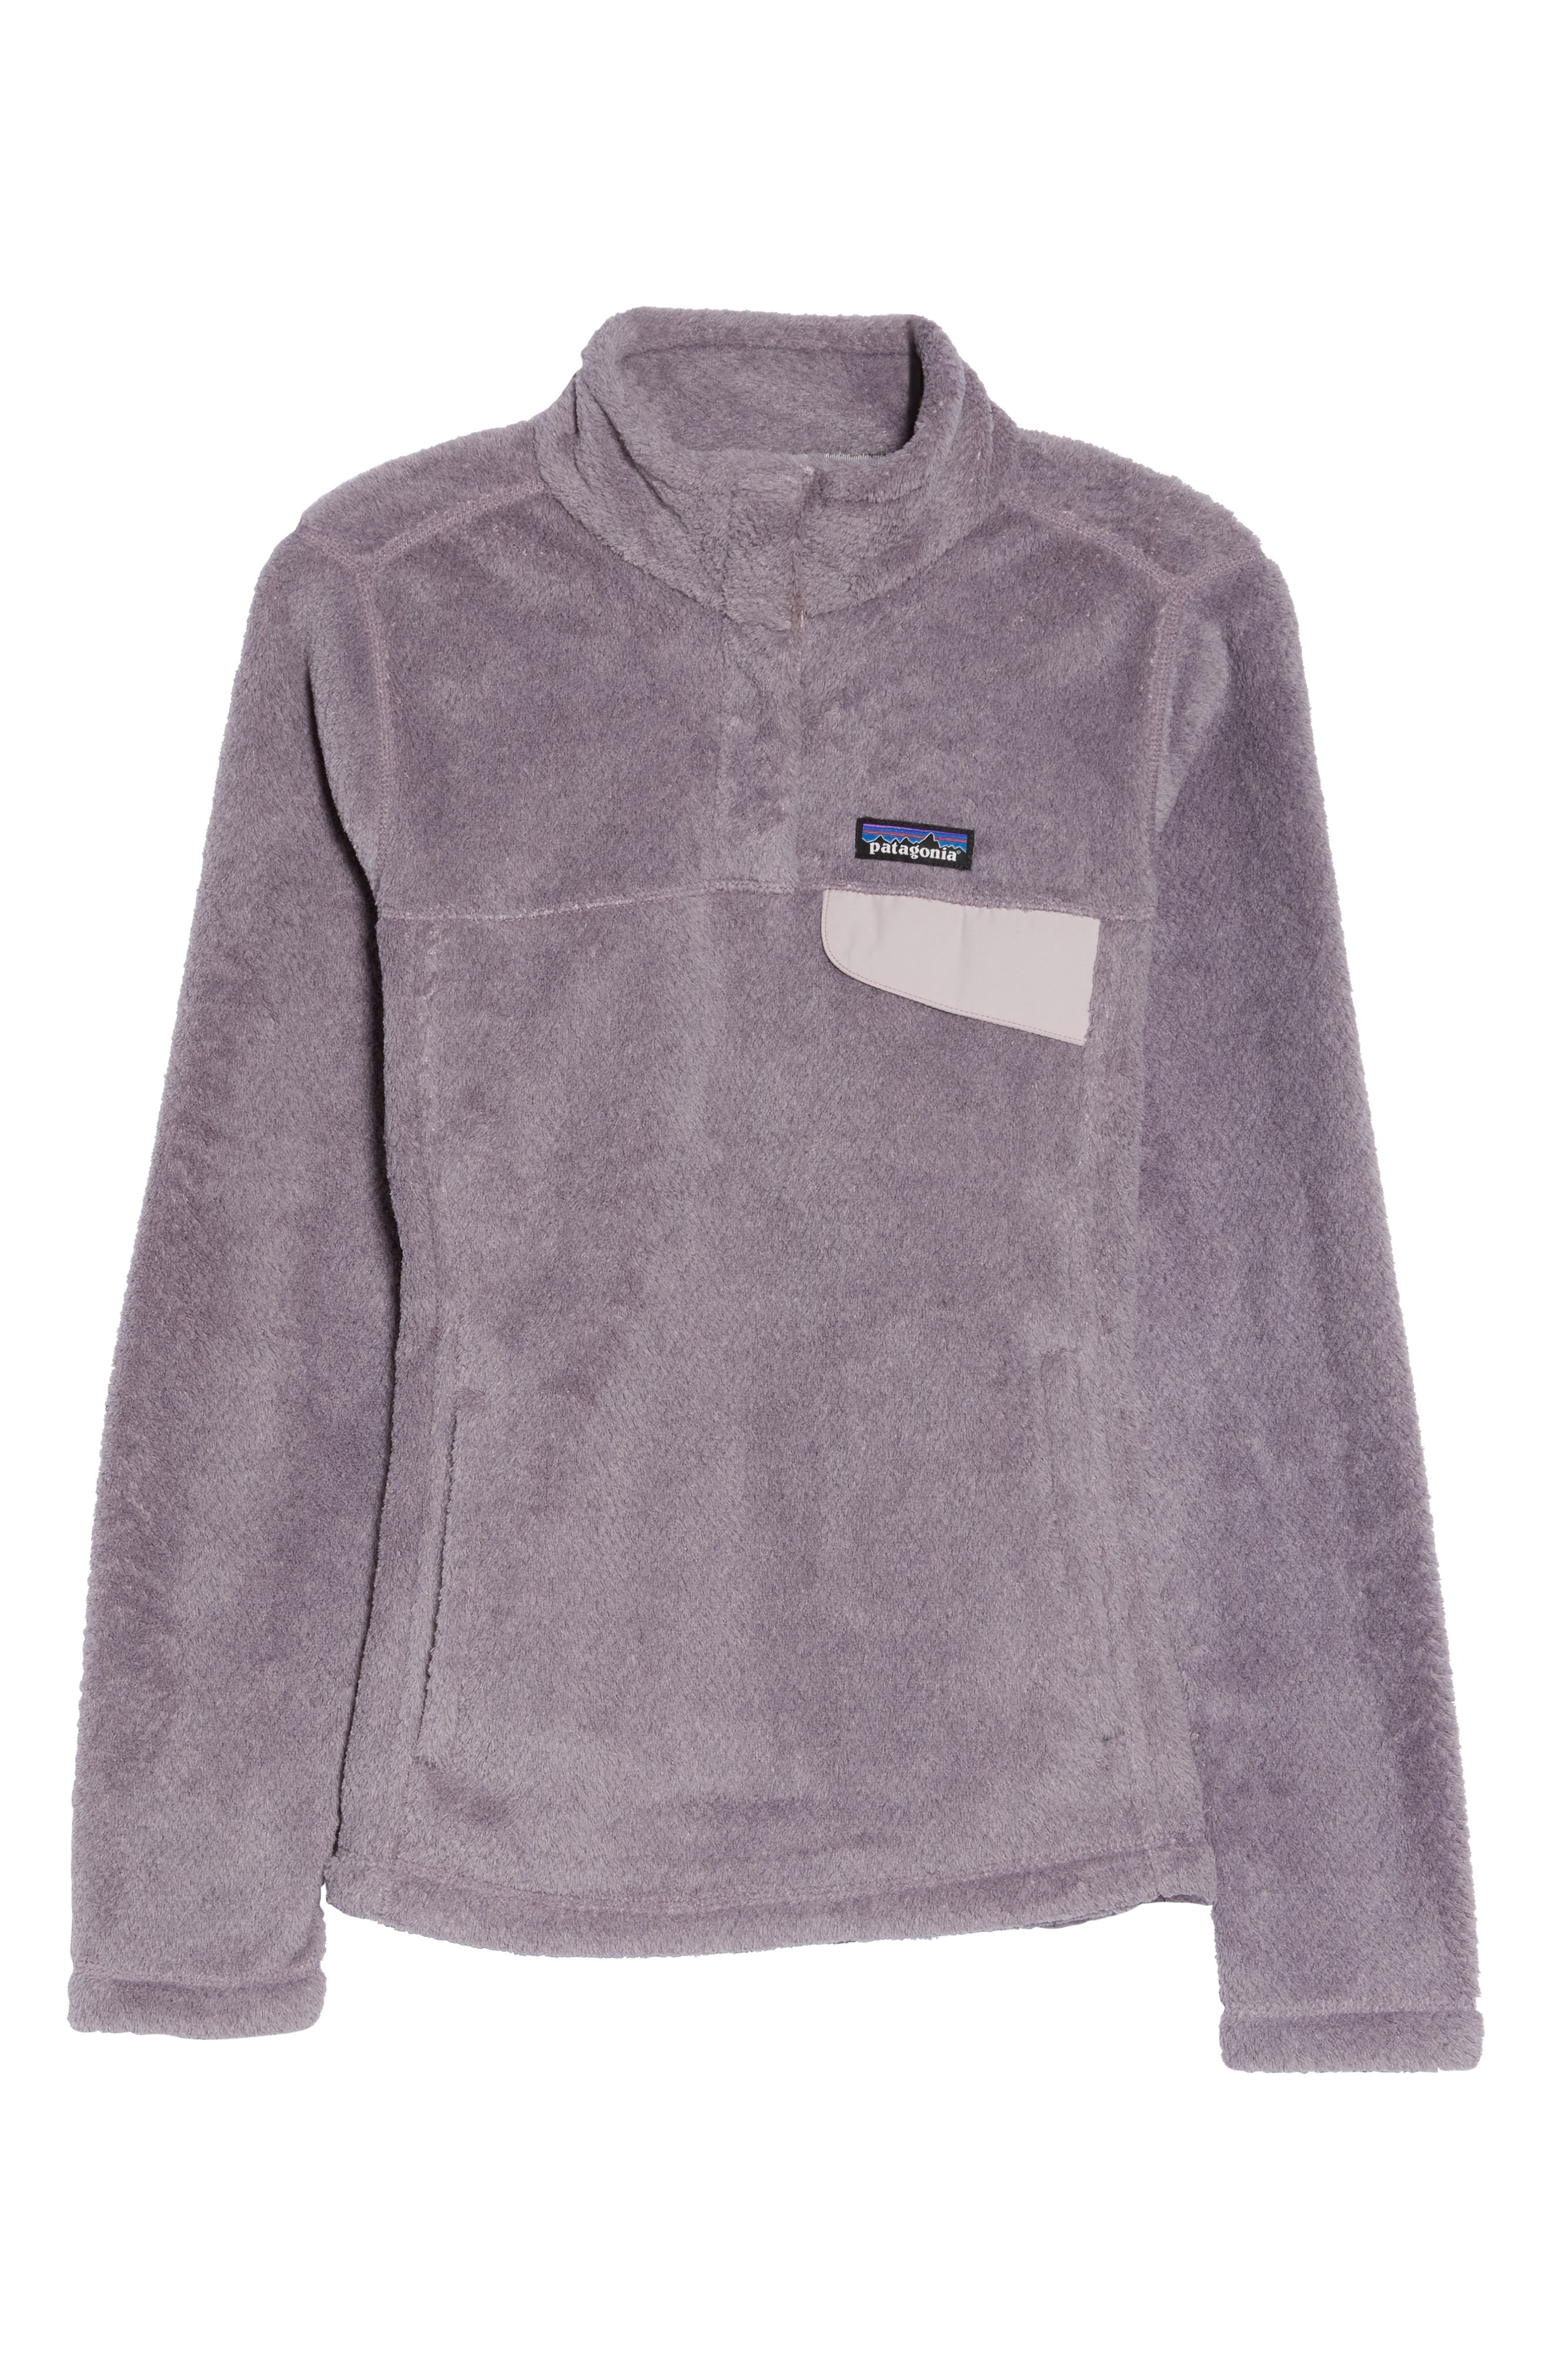 Re-Tool Snap-T<sup>®</sup> Fleece Pullover,                             Alternate thumbnail 7, color,                             SMOKEY VIOLET PURPLE X-DYE